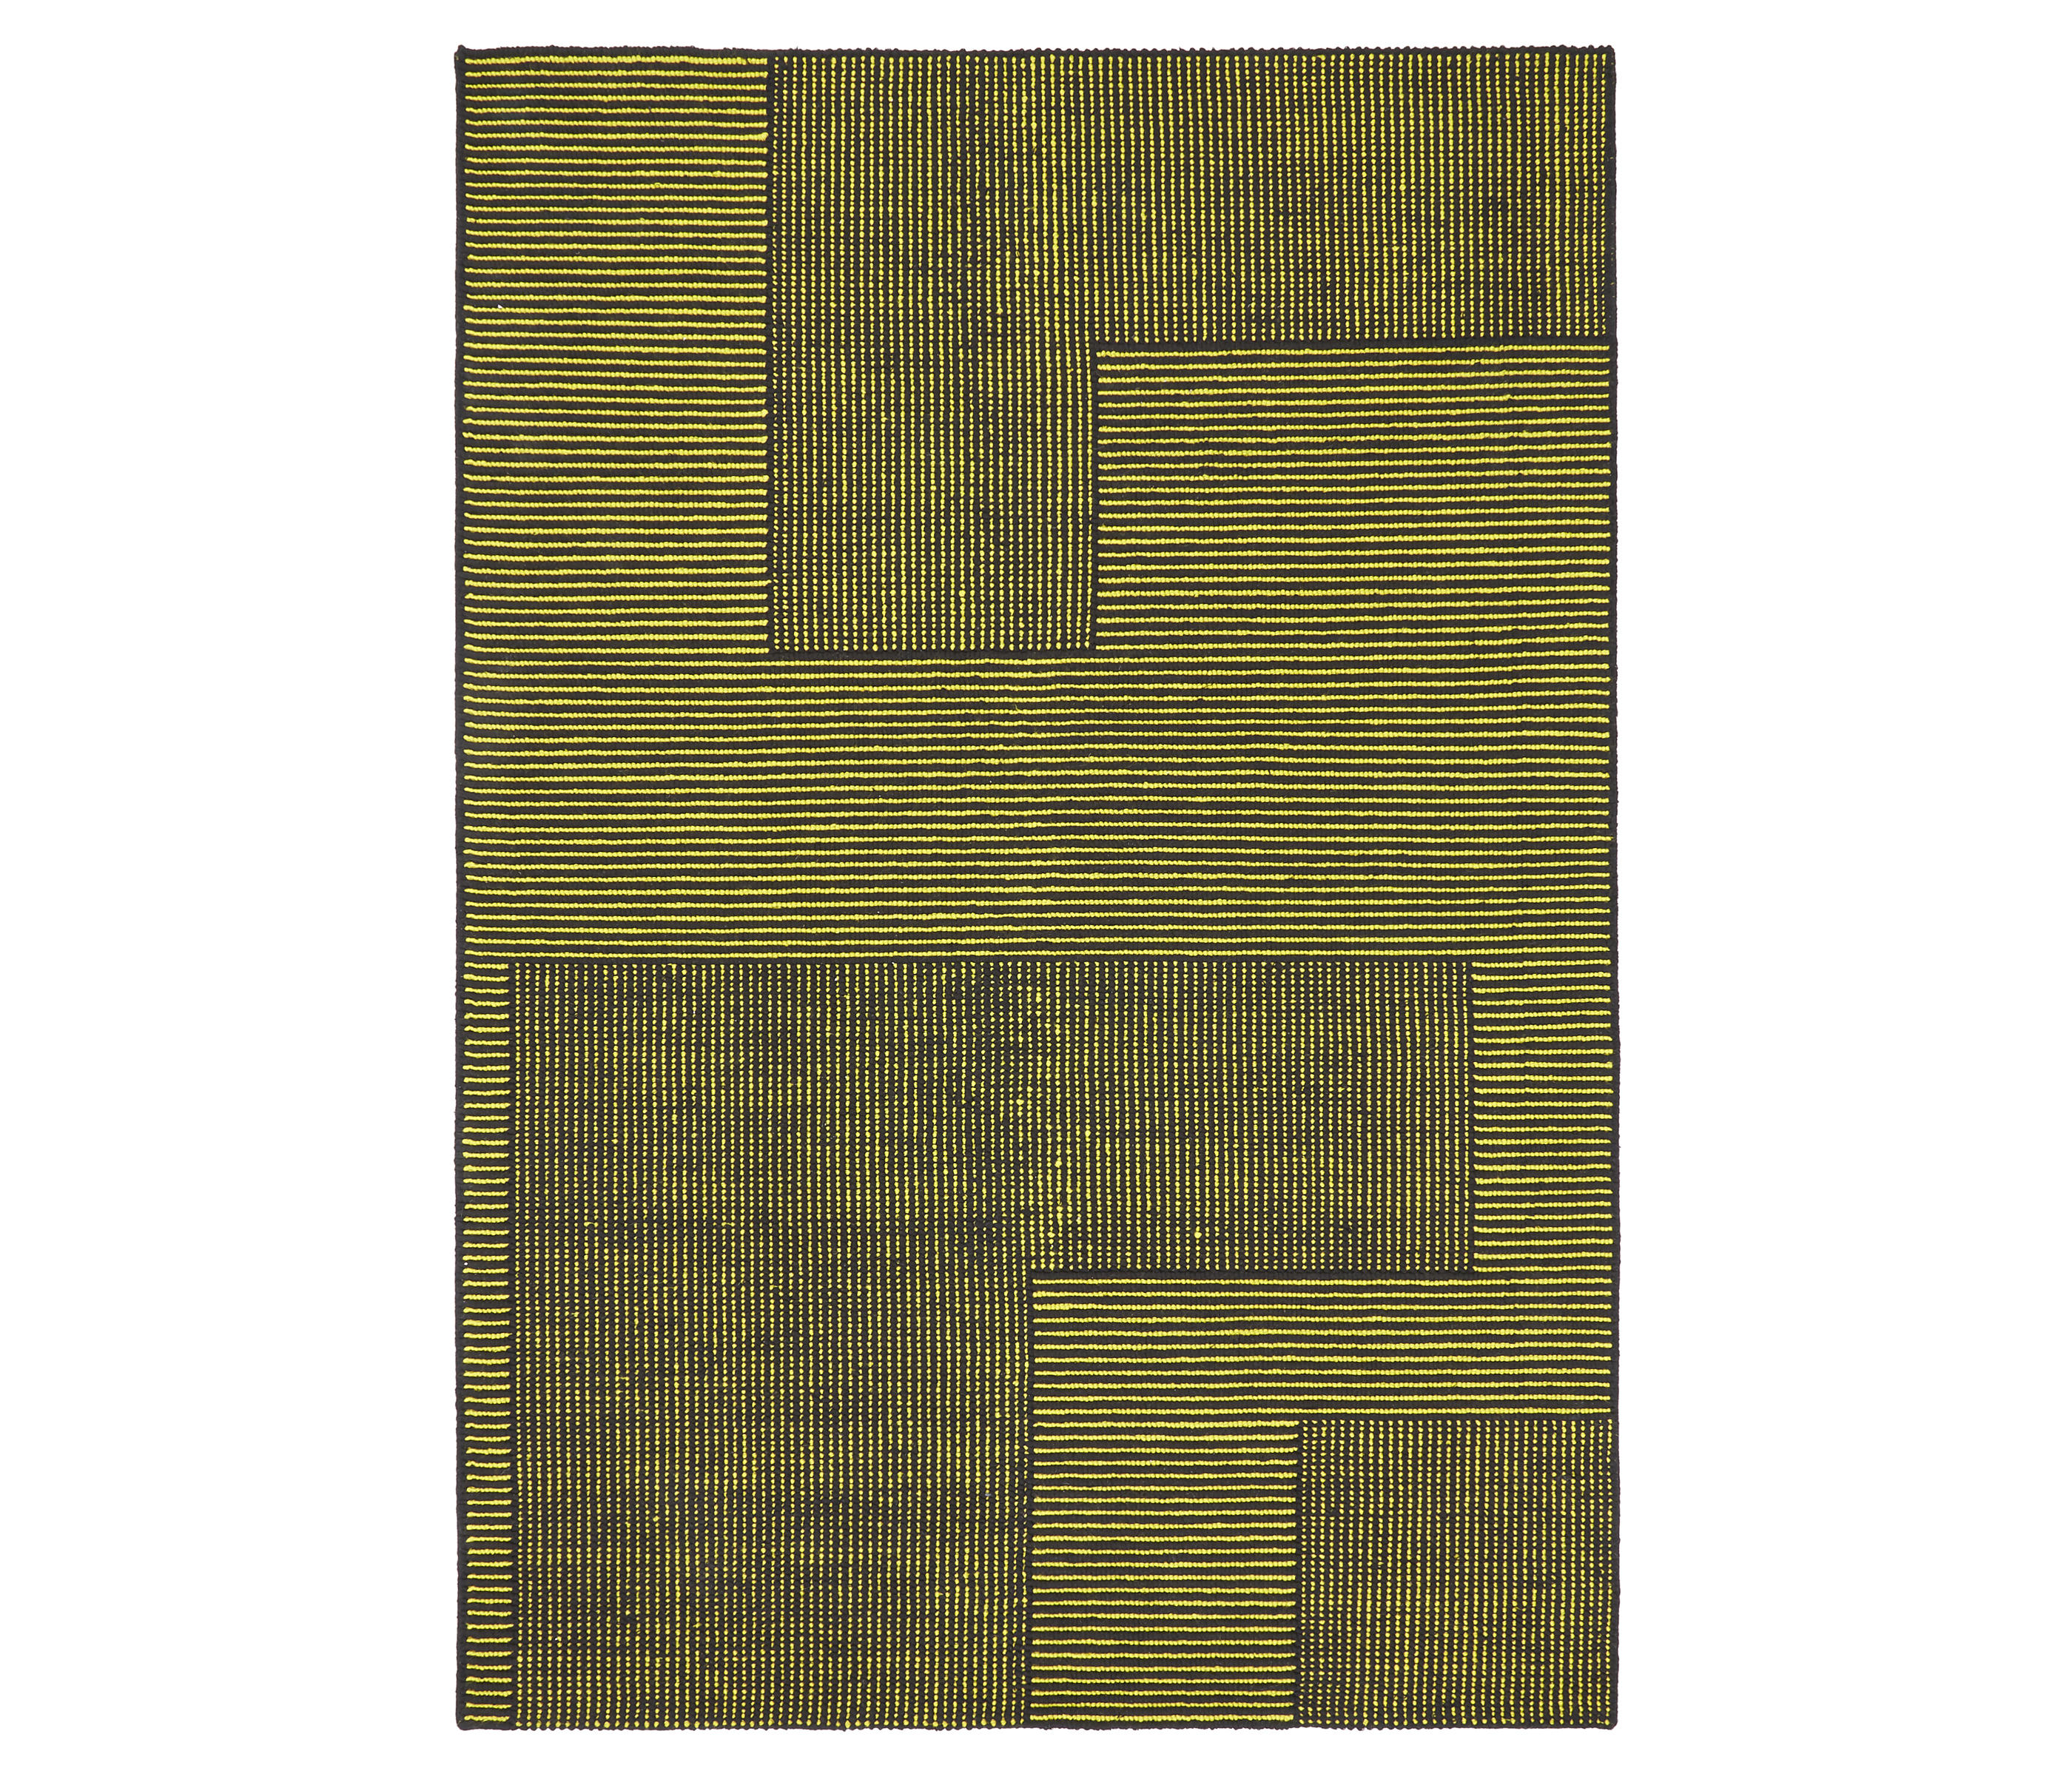 Stripe Rug Rugs Designer Rugs By Tom Dixon Architonic